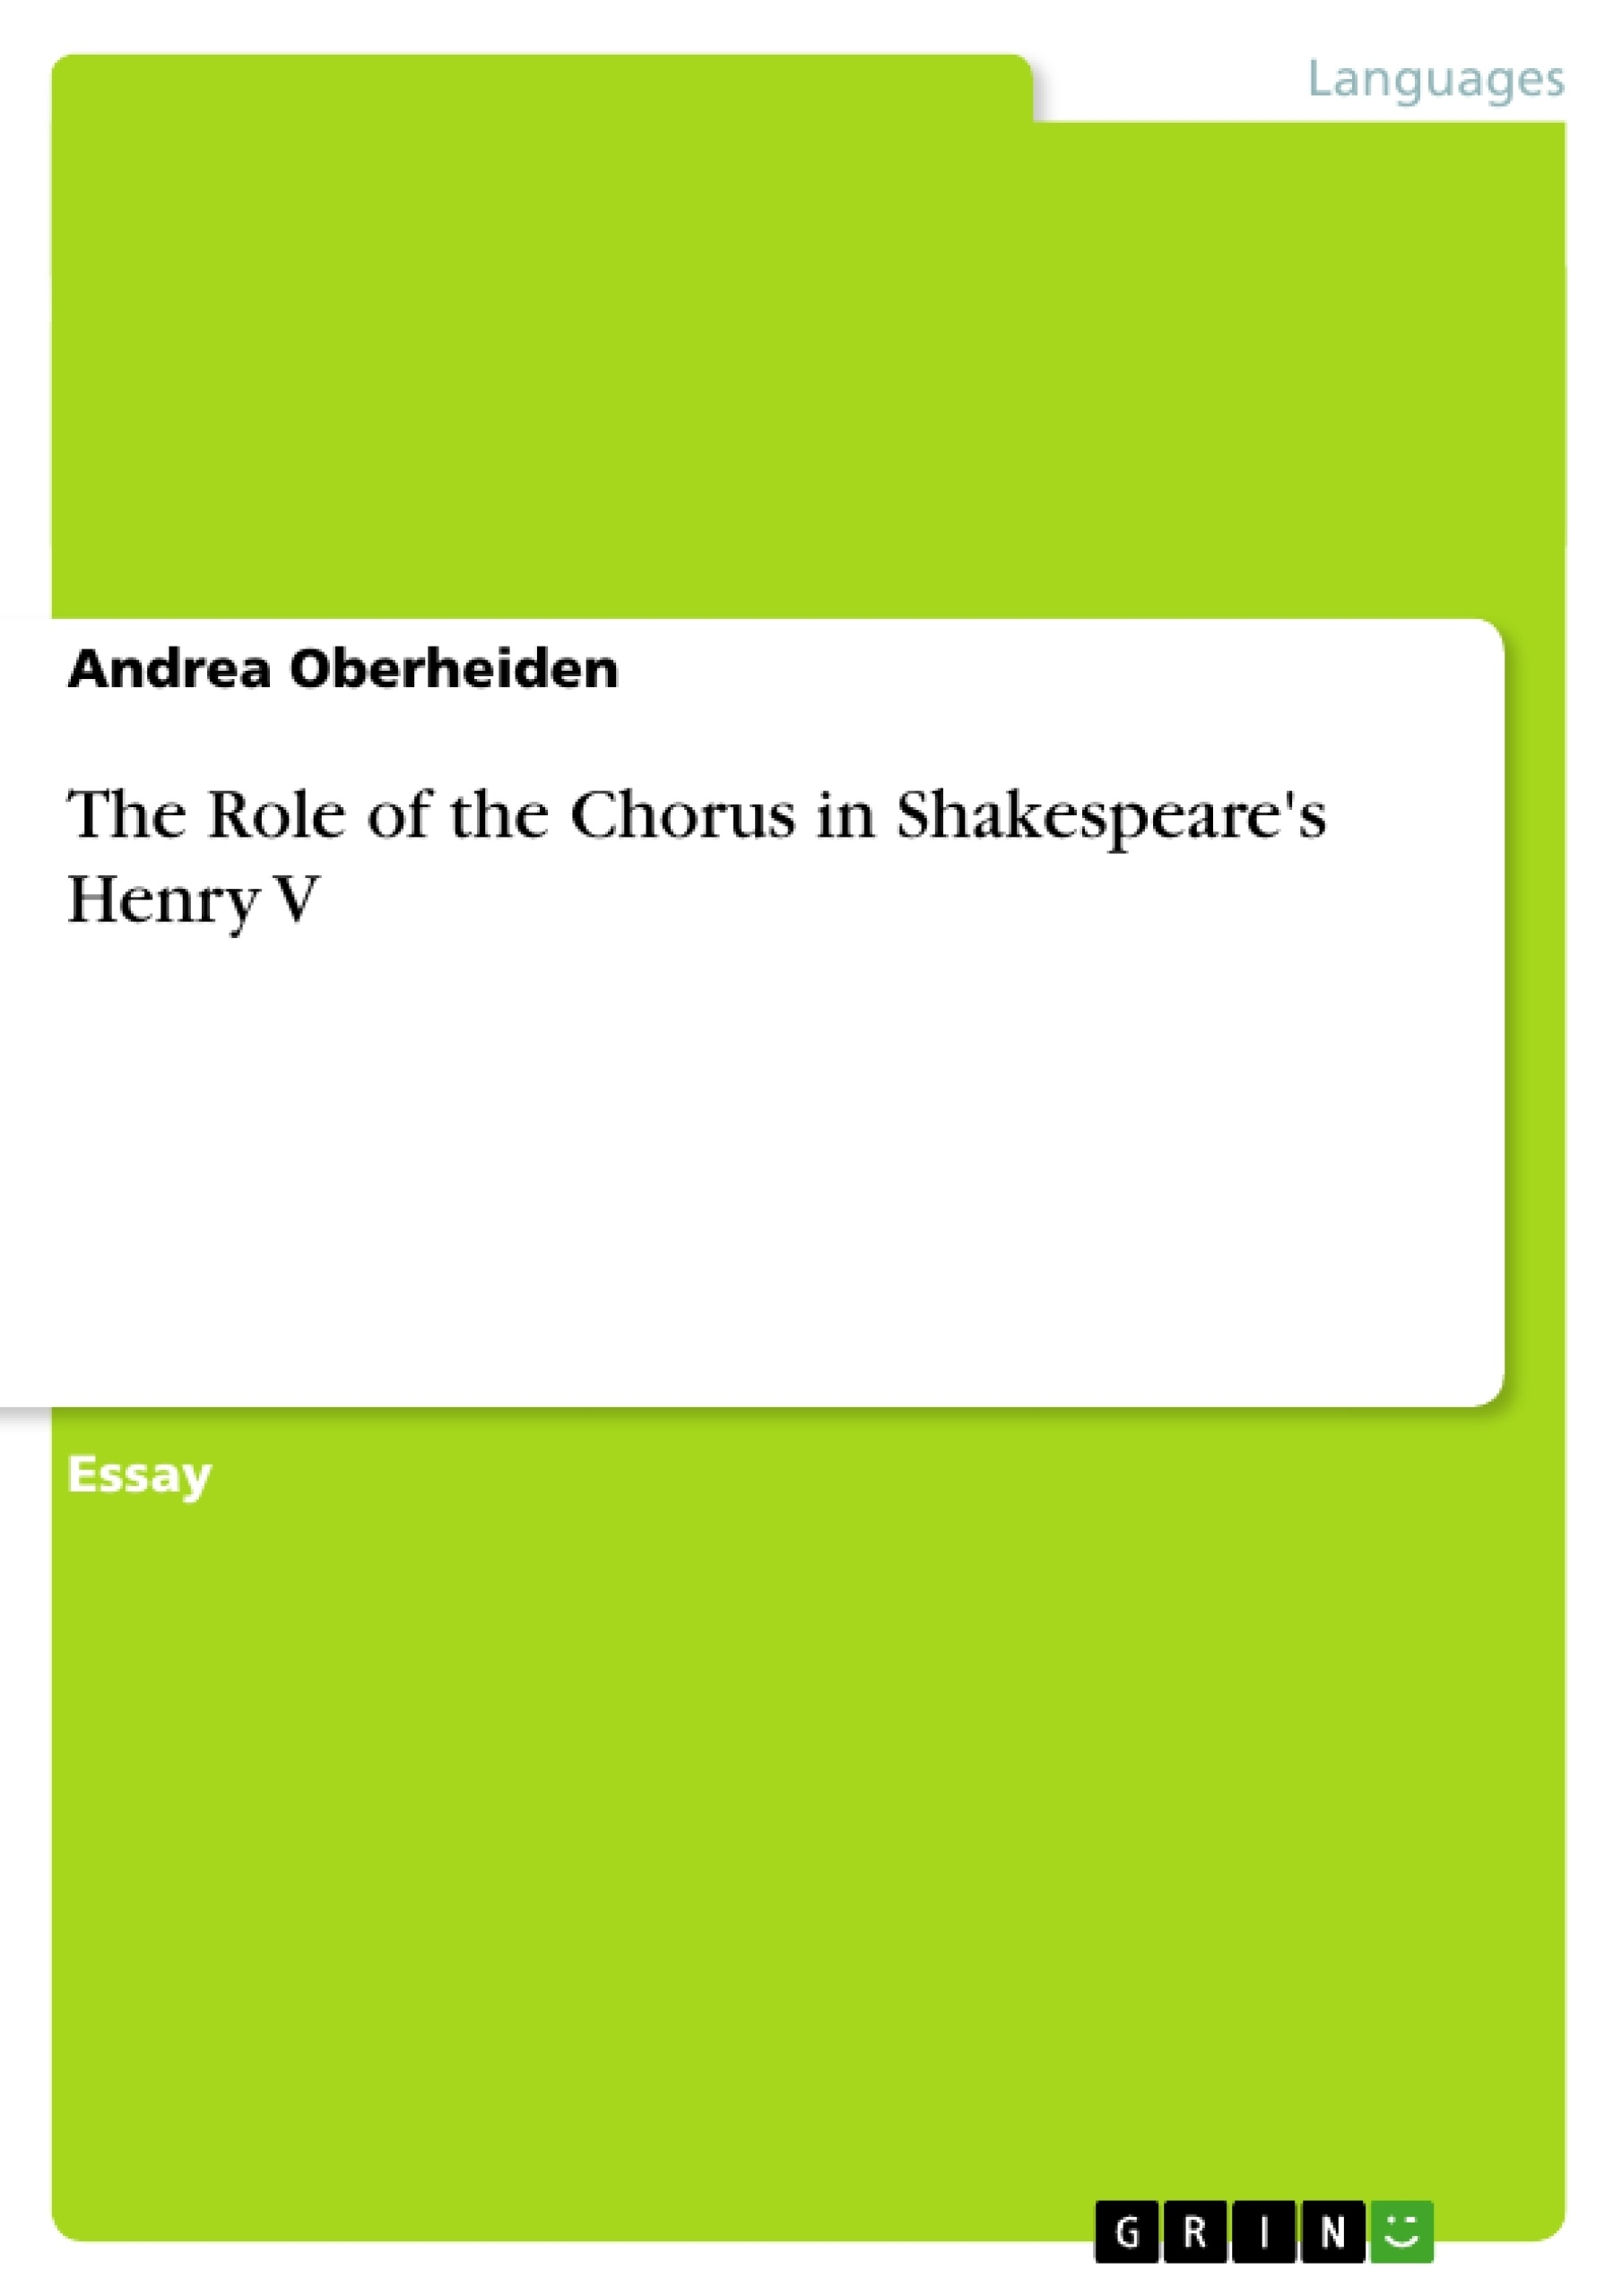 an analysis of the role of chorus in henry v a play by william shakespeare